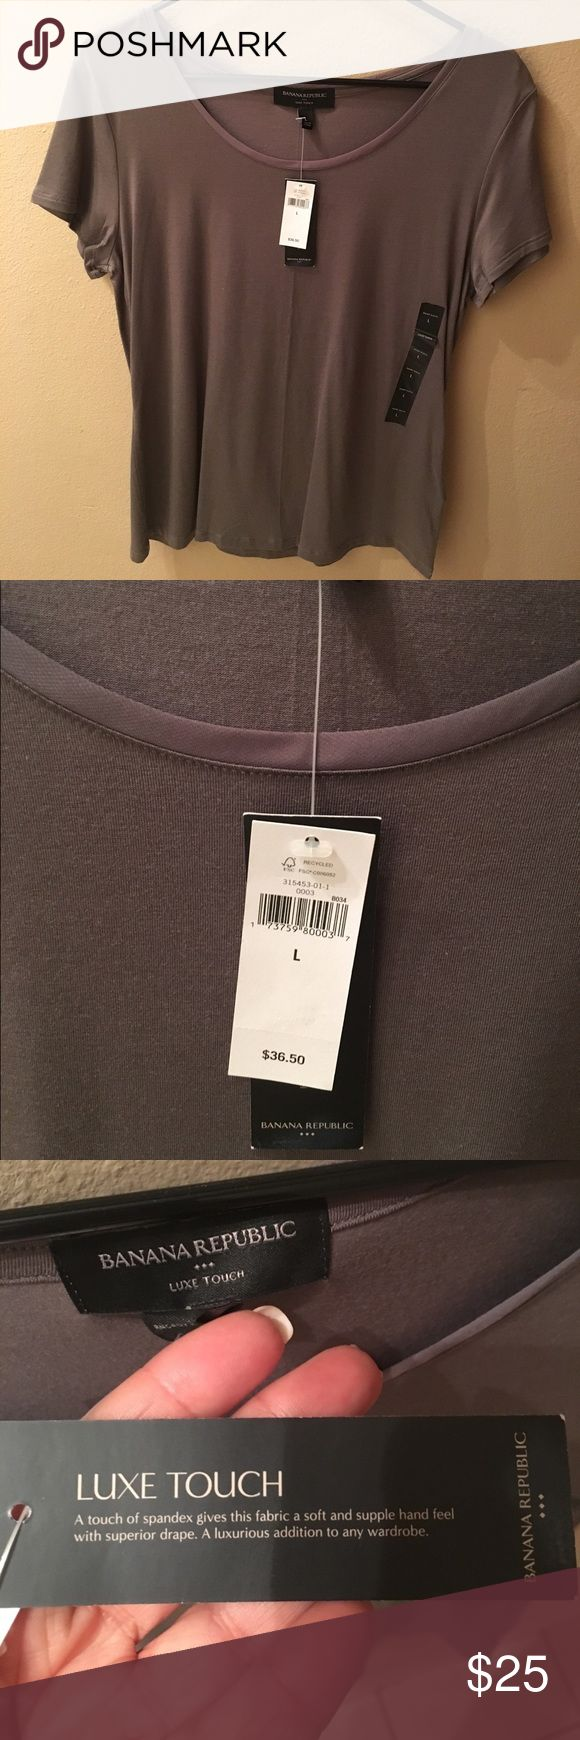 Banana Republic Soft T-Shirt Banana Republic soft t-shirt in gray with round neck. The same comfortable t-shirt is also available in my closet in bone white (SOLD) and black. Banana Republic Tops